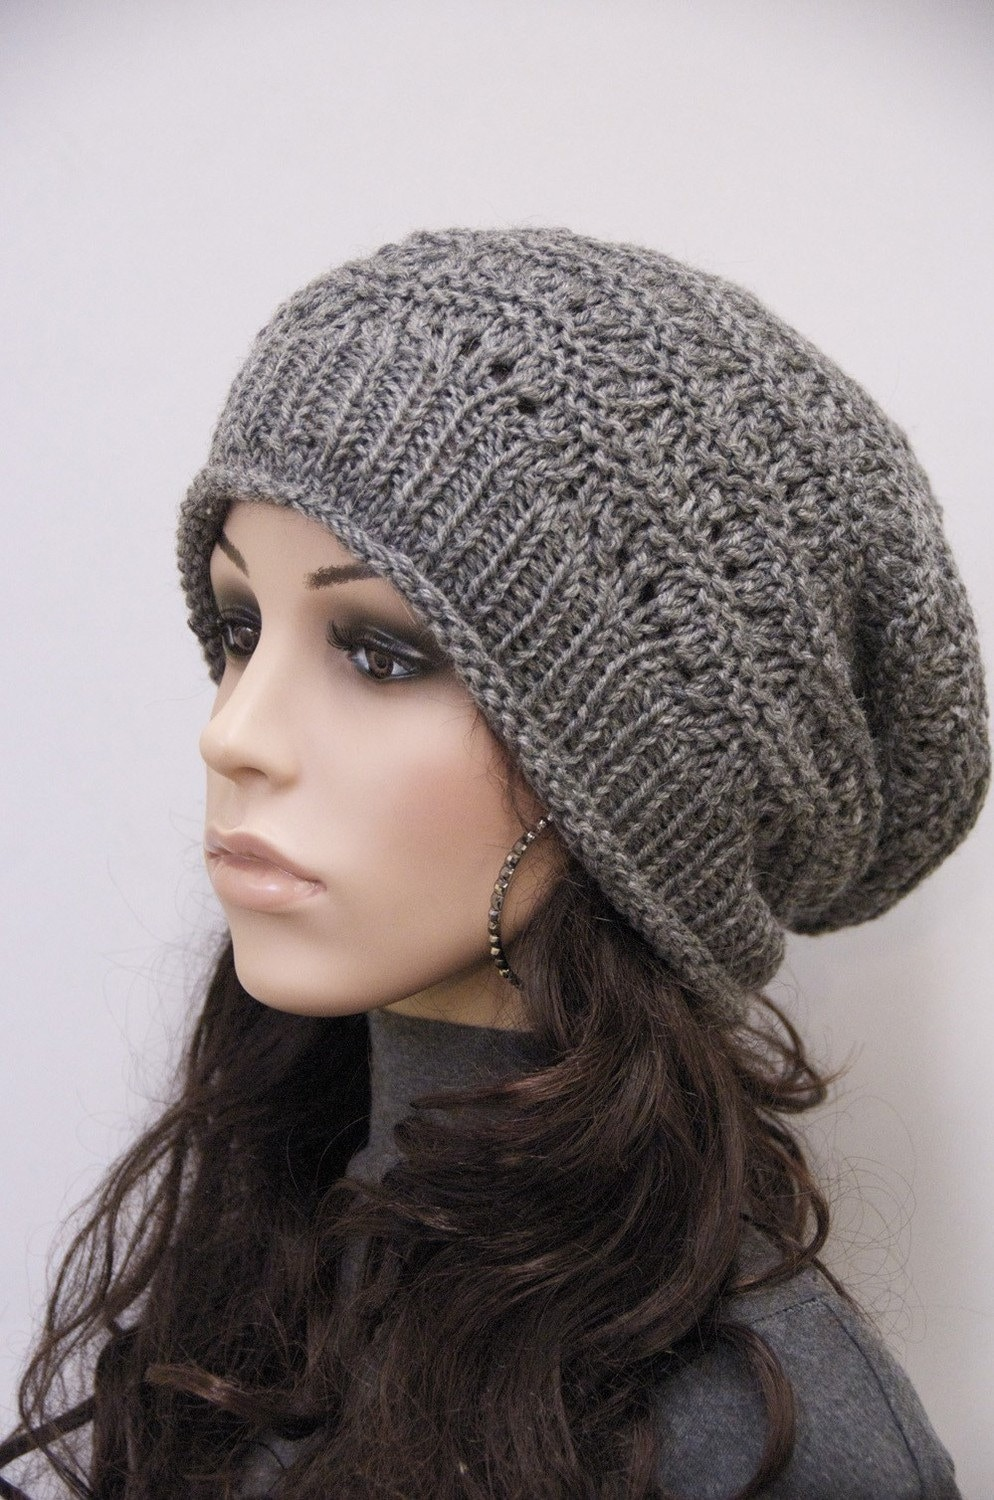 Knitting Patterns Caps : Hand Knit hat woman hat winter hat Charcoal Wool Hat dark grey